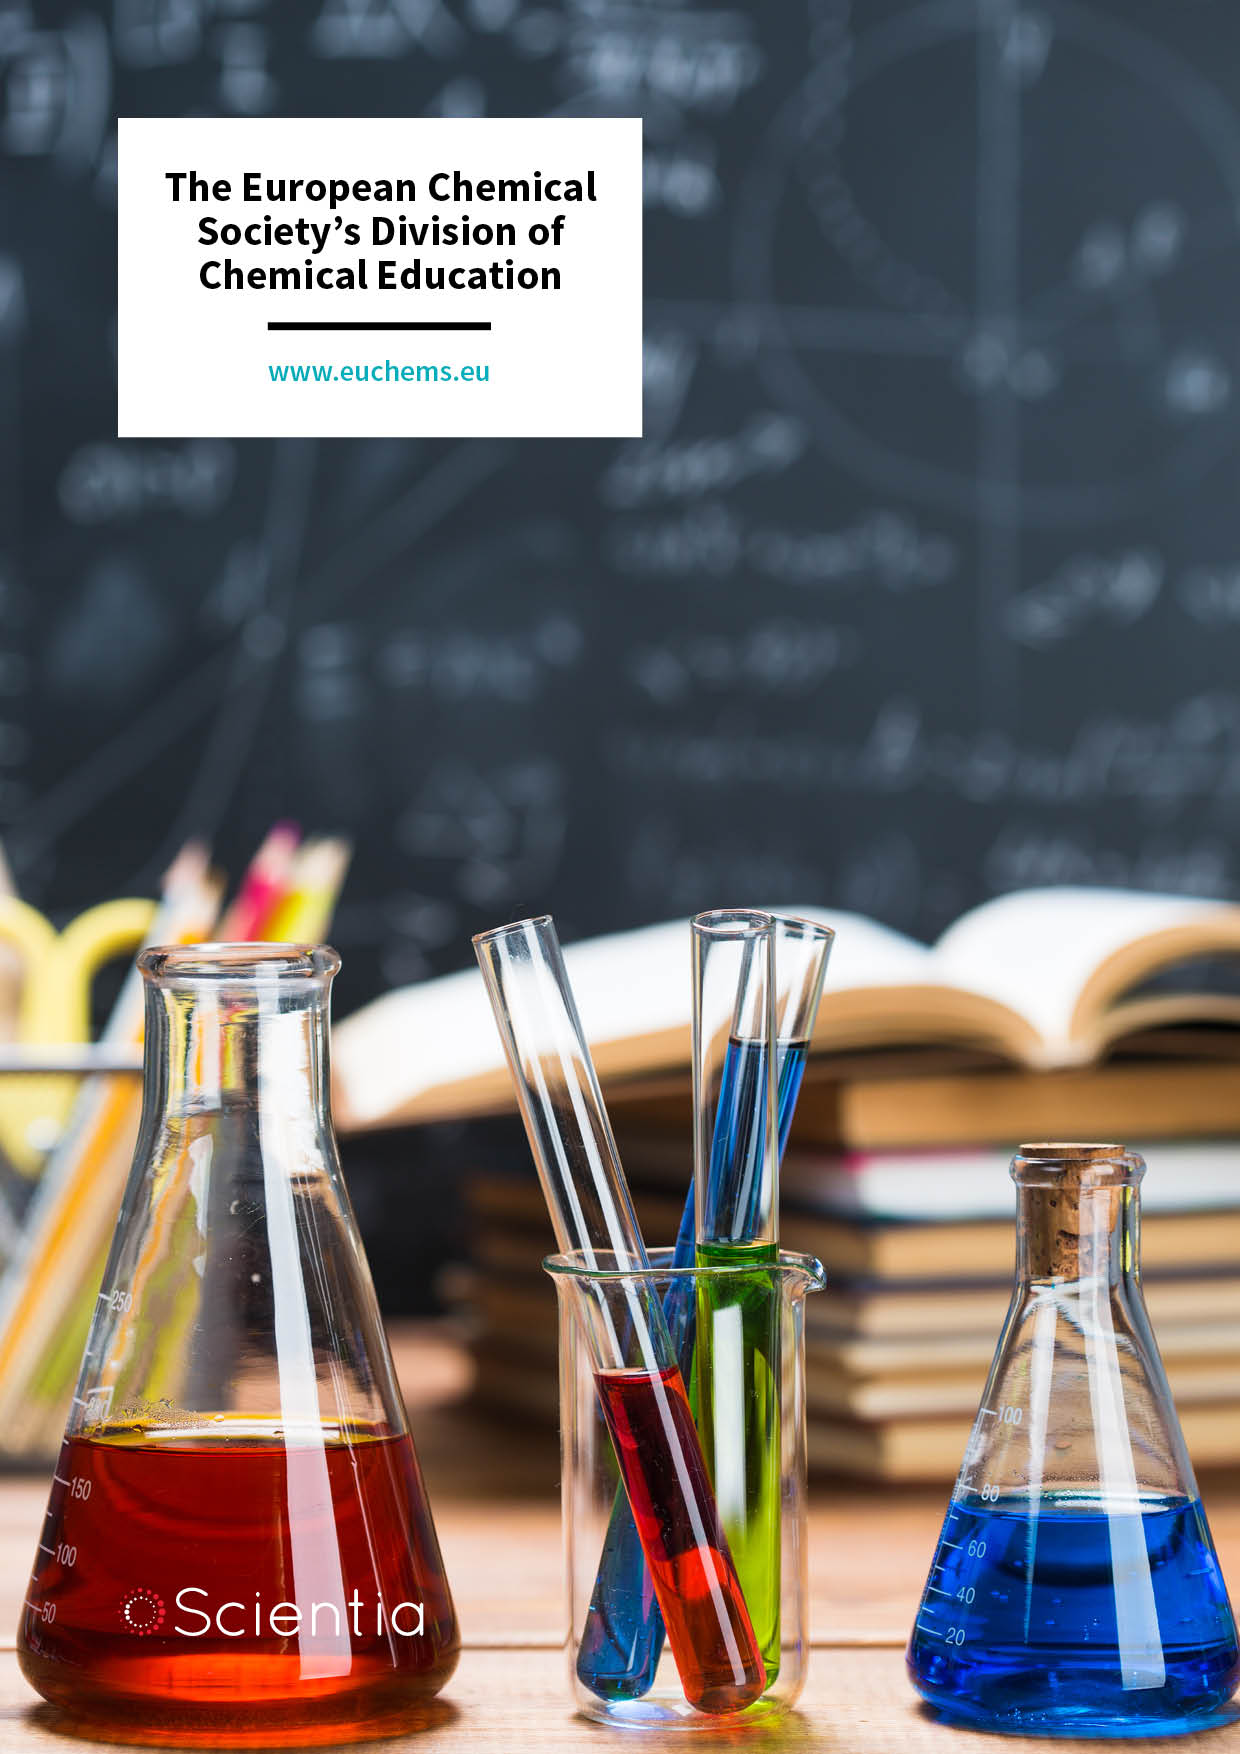 The European Chemical Society's Division of Chemical Education